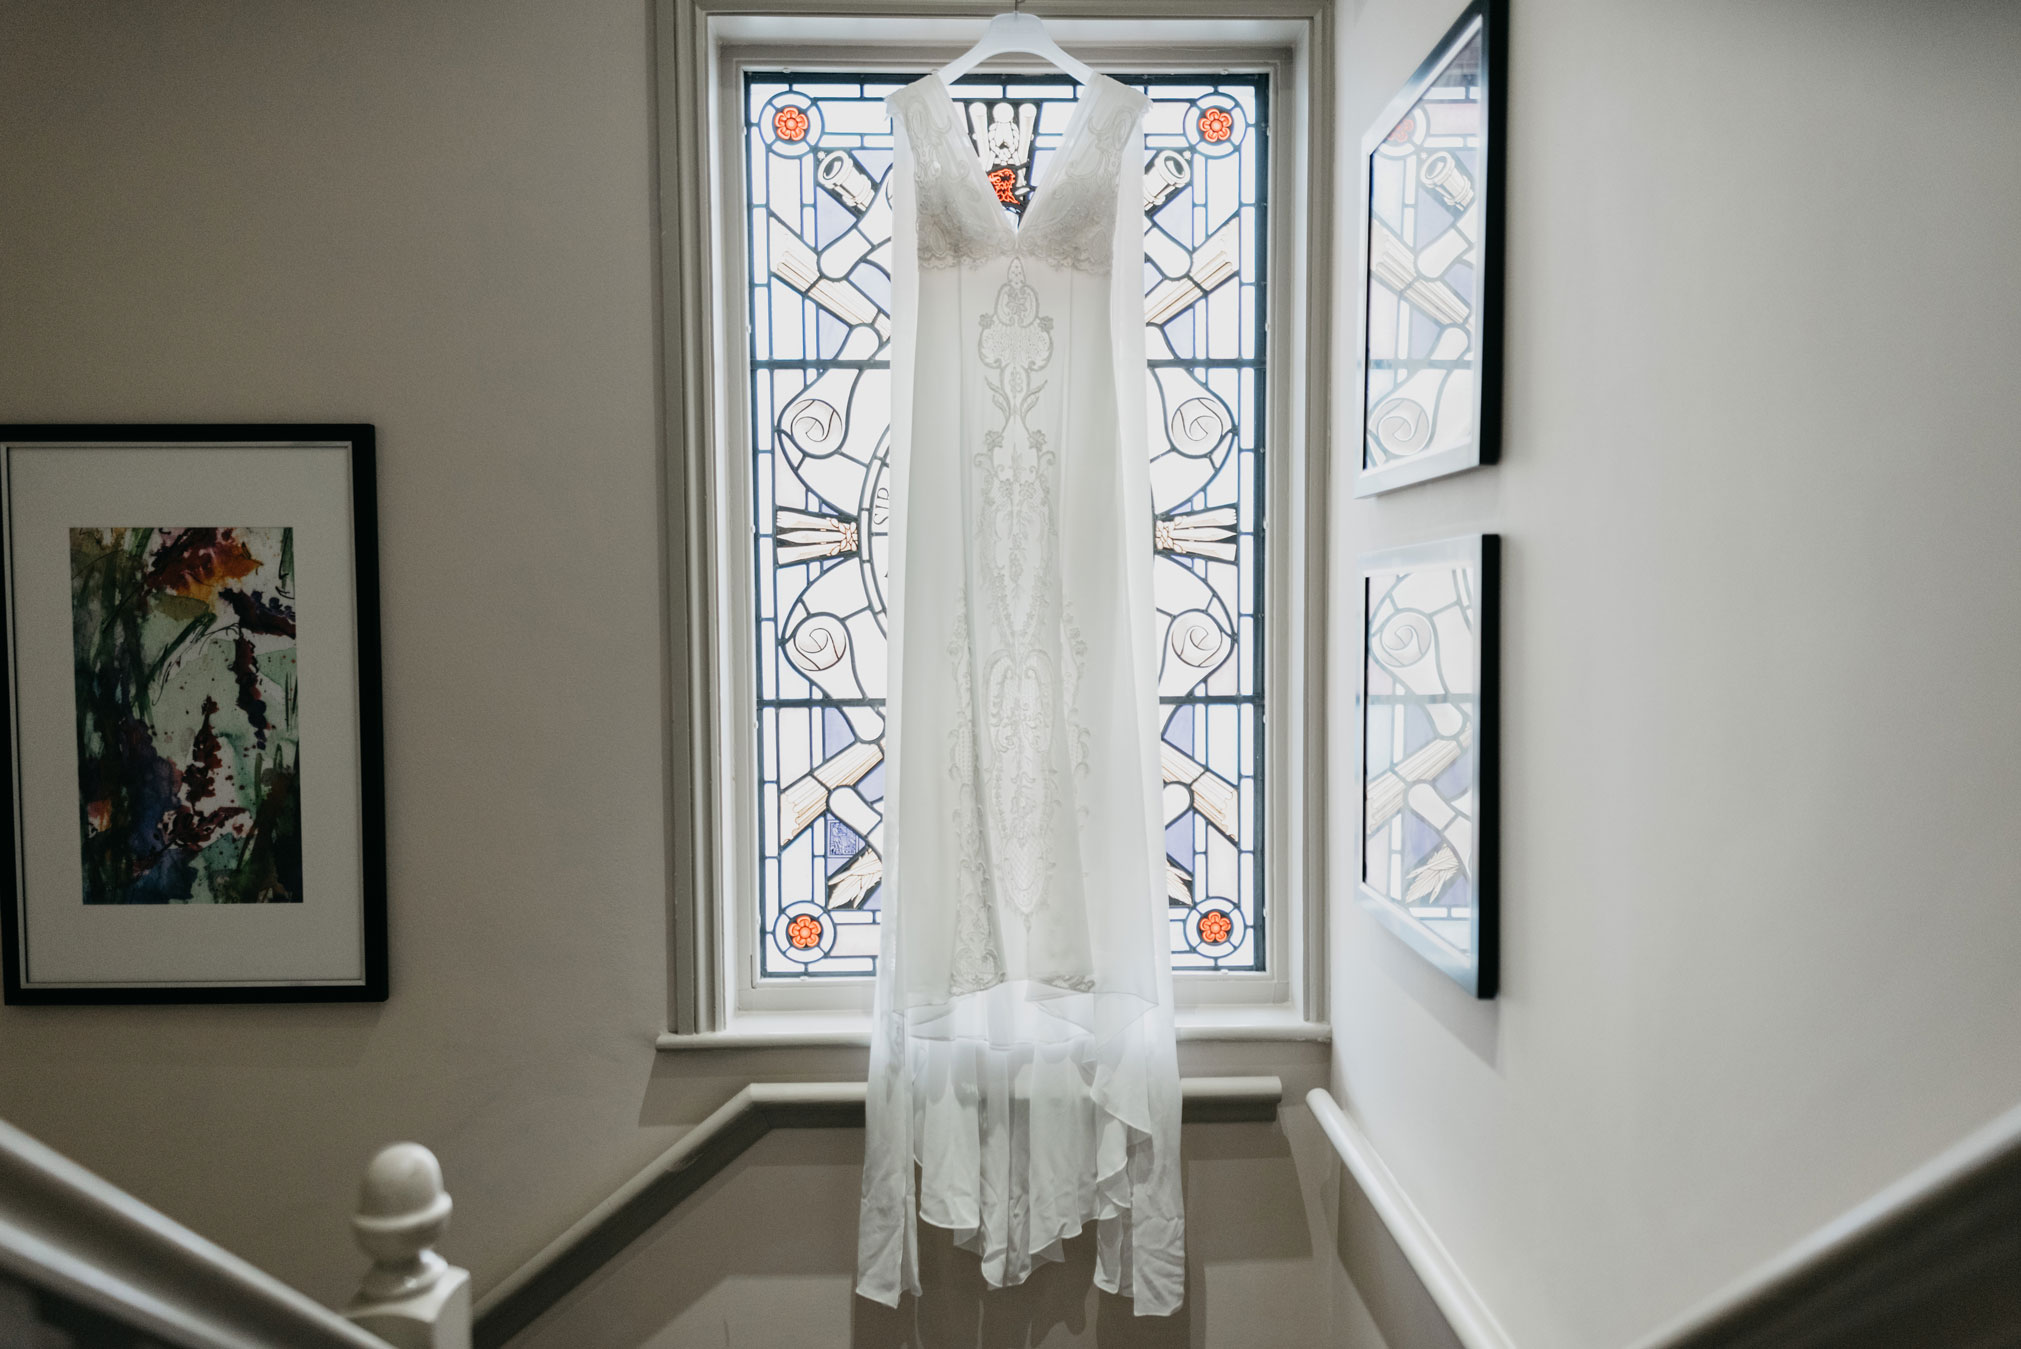 brides dress hung up at the window